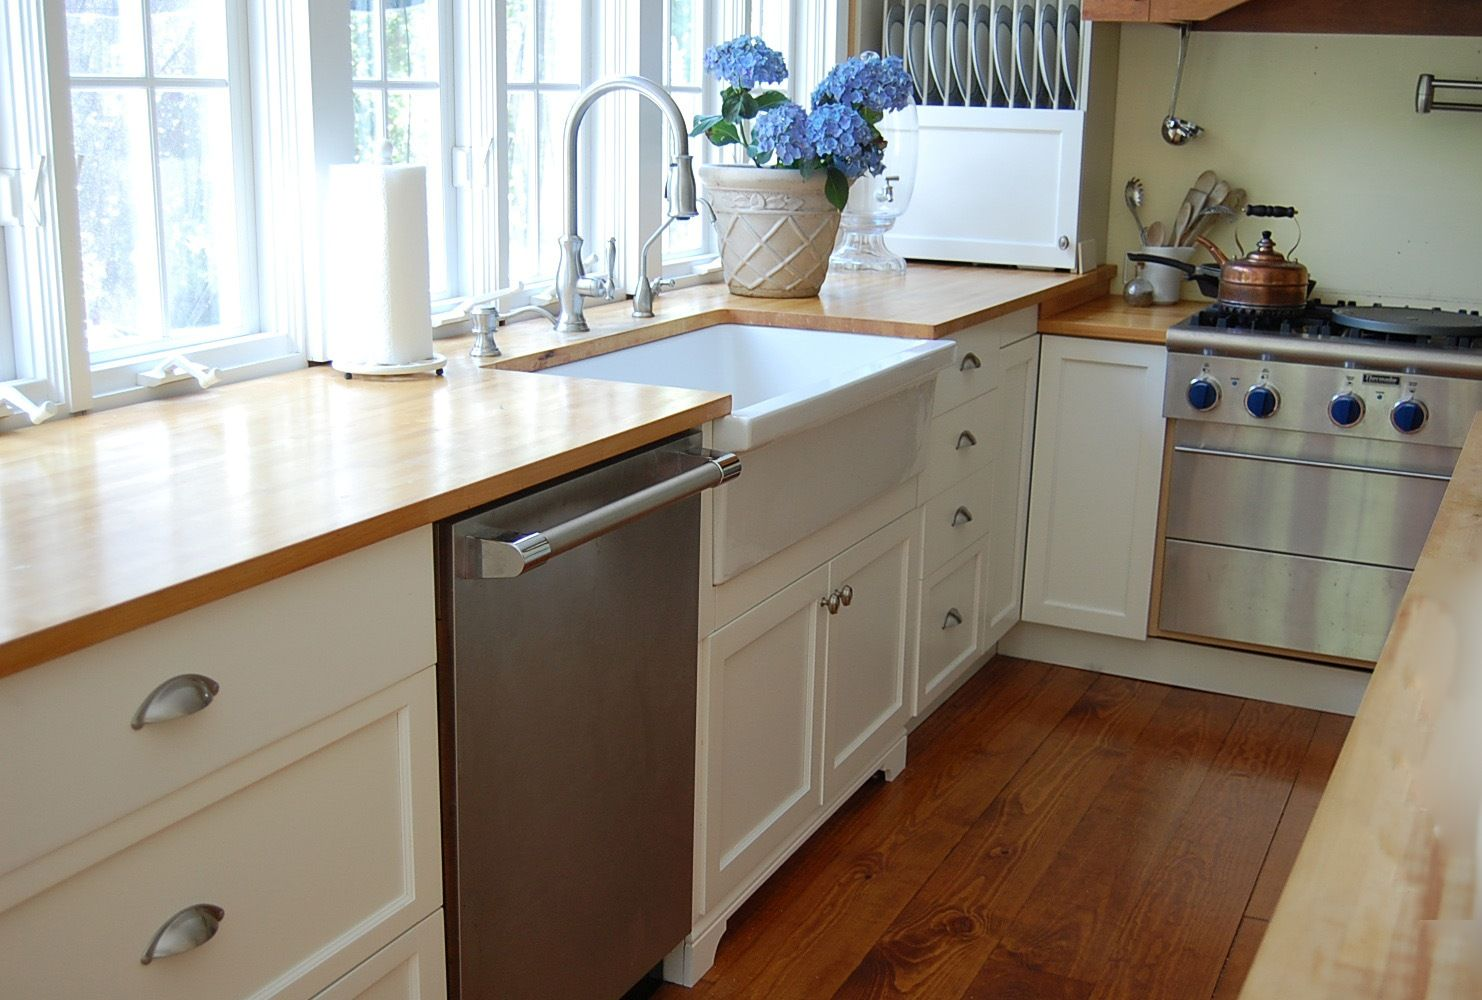 1000 images about kitchen on pinterest apron front sink ikea cabinets and farmhouse sinks apron kitchen sink kitchen sinks alcove